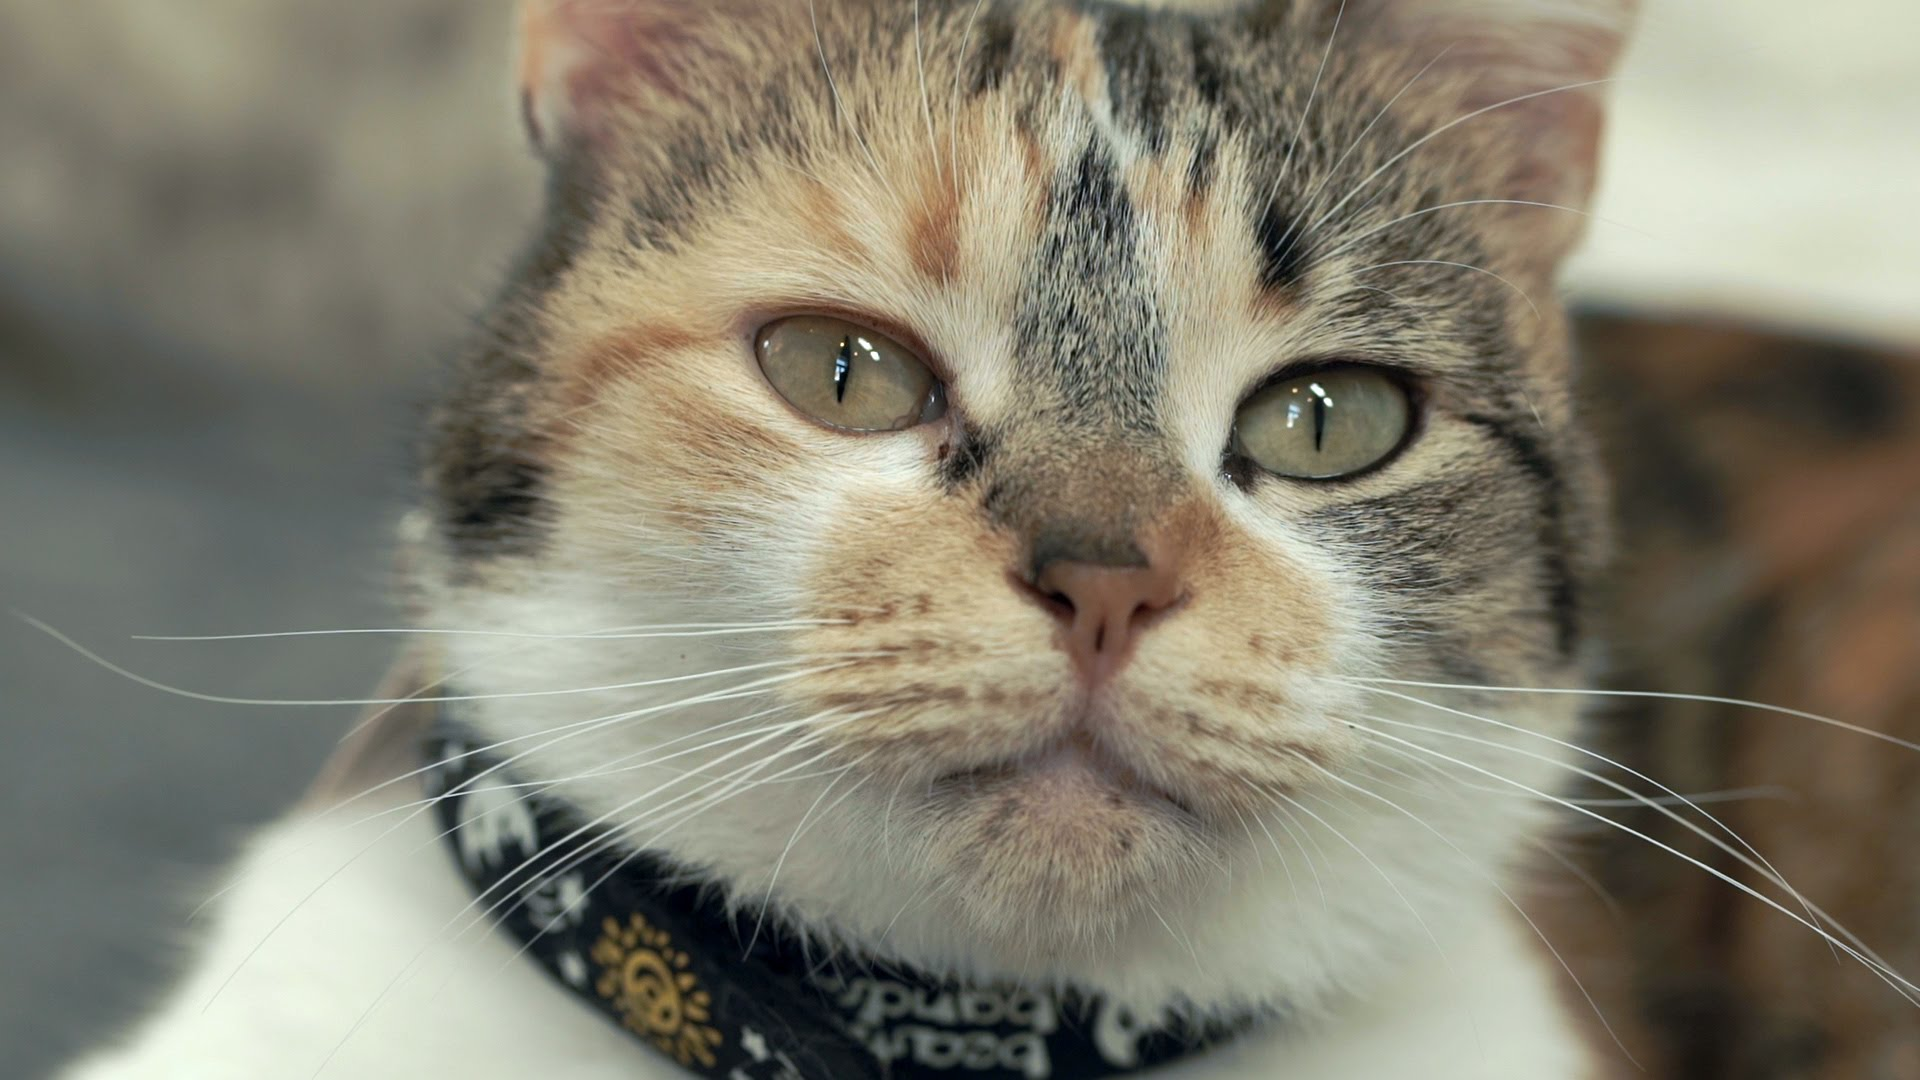 swedish scientists study how cats respond to the way humans